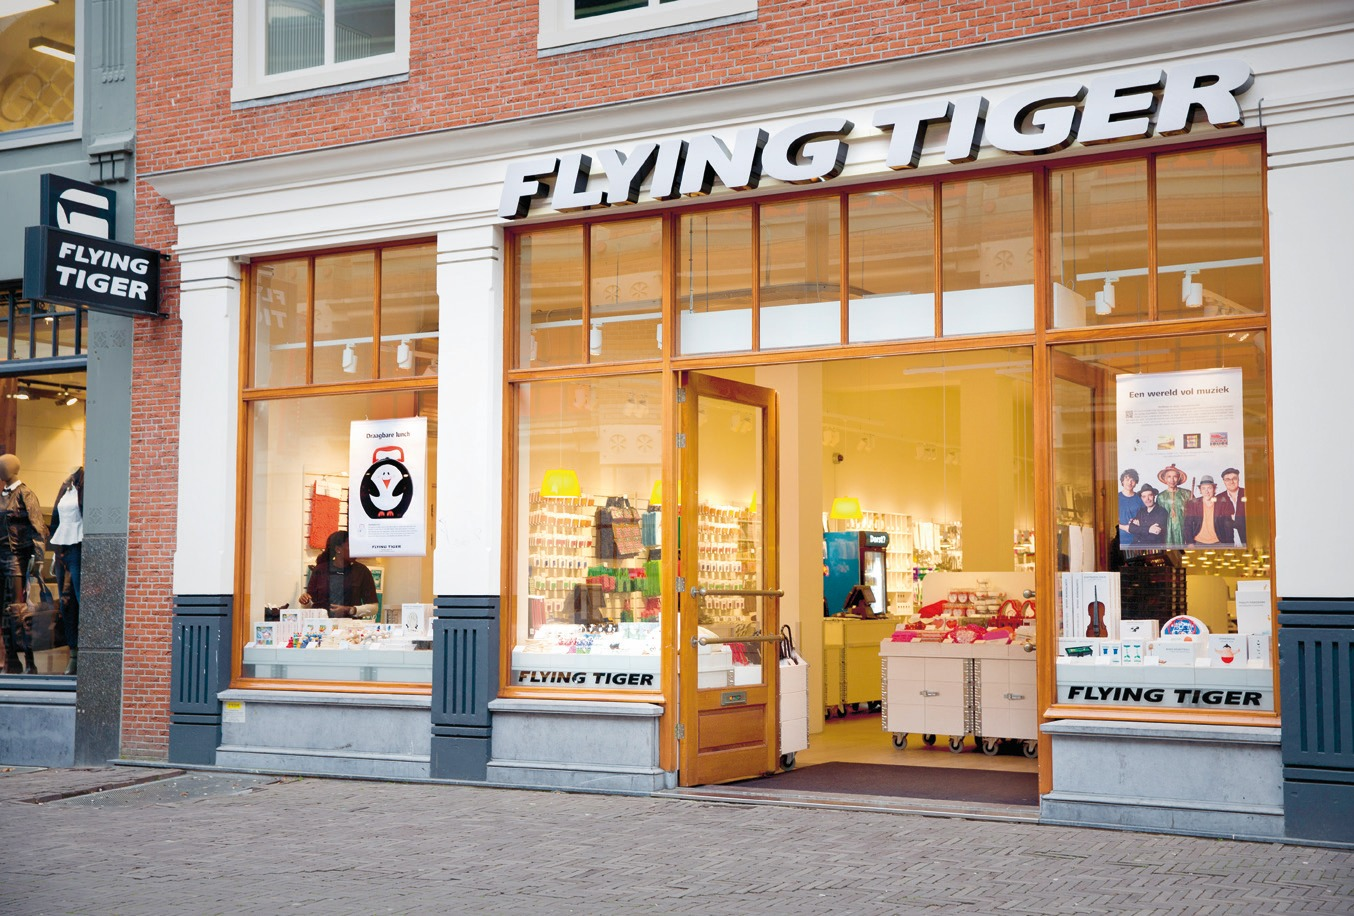 Flying Tiger in Apeldoorn